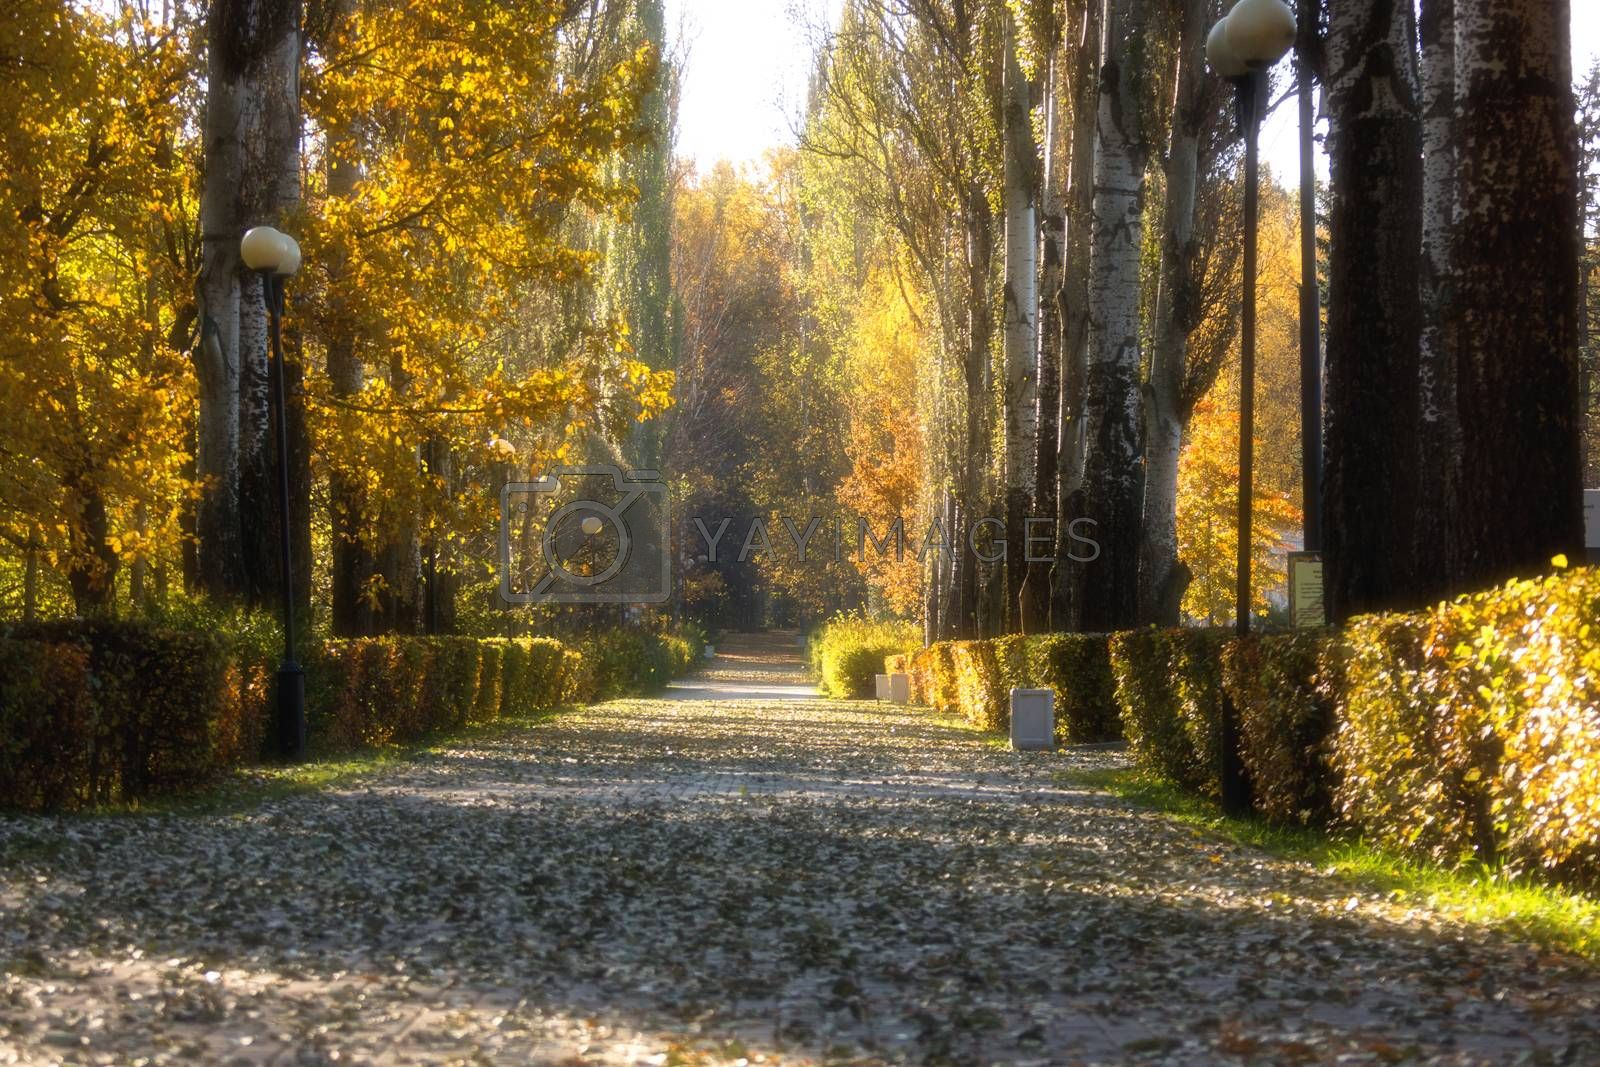 The photo shows autumn road backfilled yellow foliage